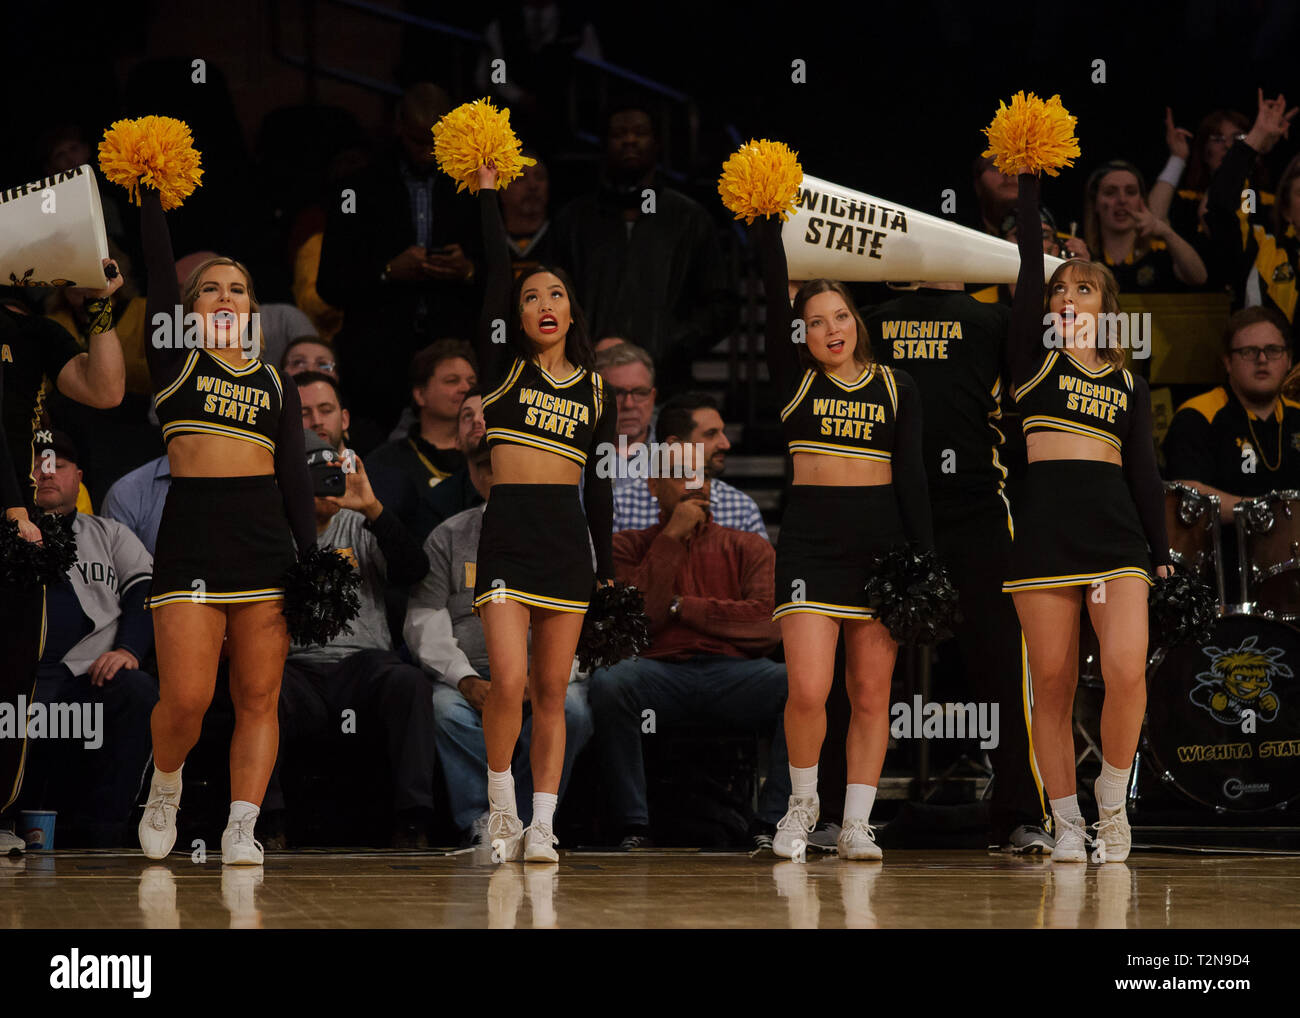 April 02, 2019: The Wichita State Shockers cheerleaders root on their team at the semi-final of the NIT Tournament game between The Wichita State Shockers and The Lipscomb Bisons at Madison Square Garden, New York, New York. The Lipscomb Bisons defeat The Wichita State Shockers 71-64. Mandatory credit: Kostas Lymperopoulos/CSM - Stock Image